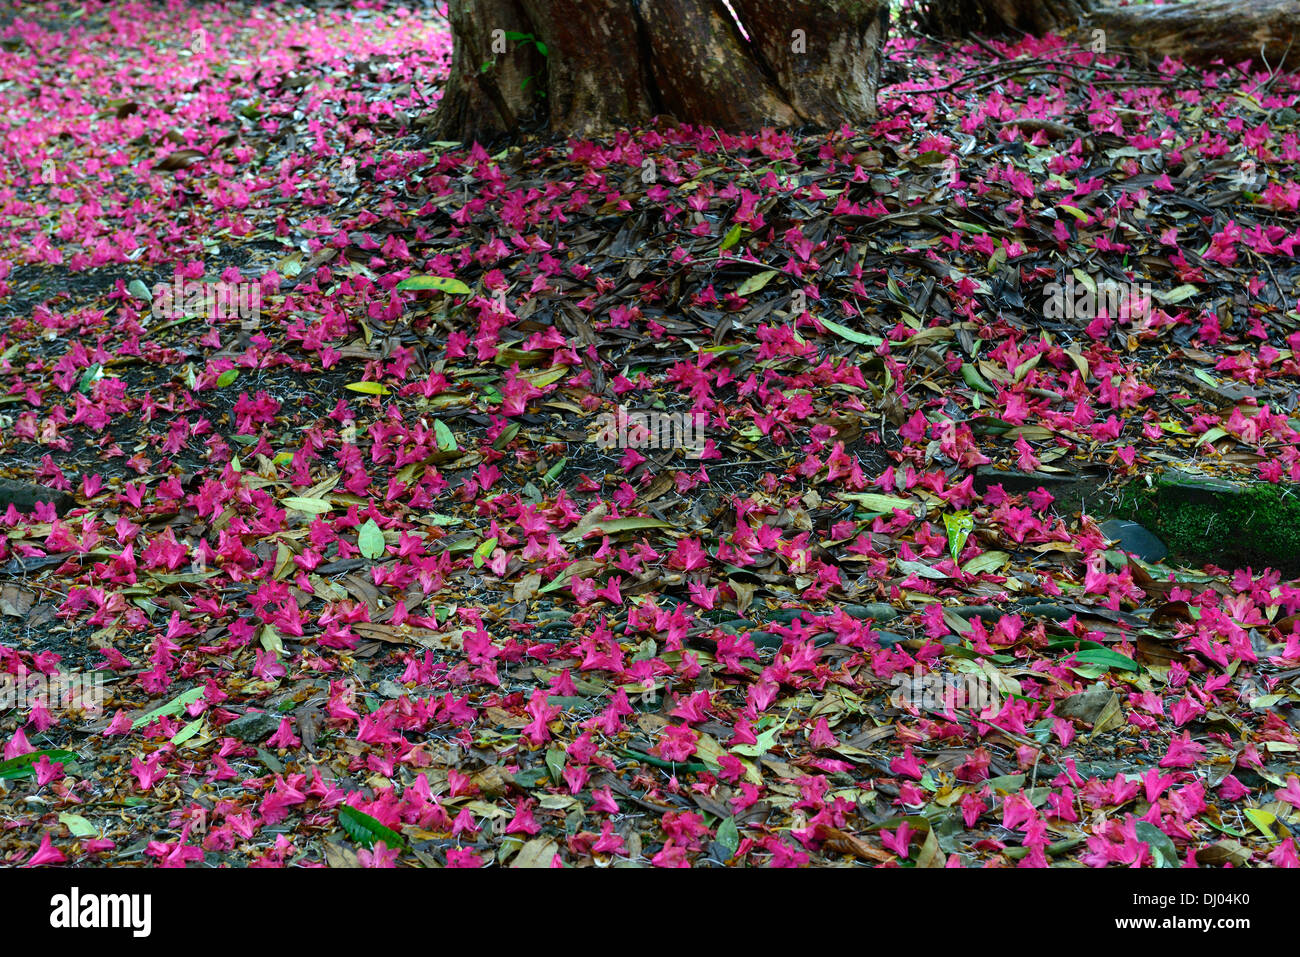 rhododendron arboreum subsp delavayi tree lined avenue path red flowers flowering kilmacurragh botanic garden wicklow - Stock Image